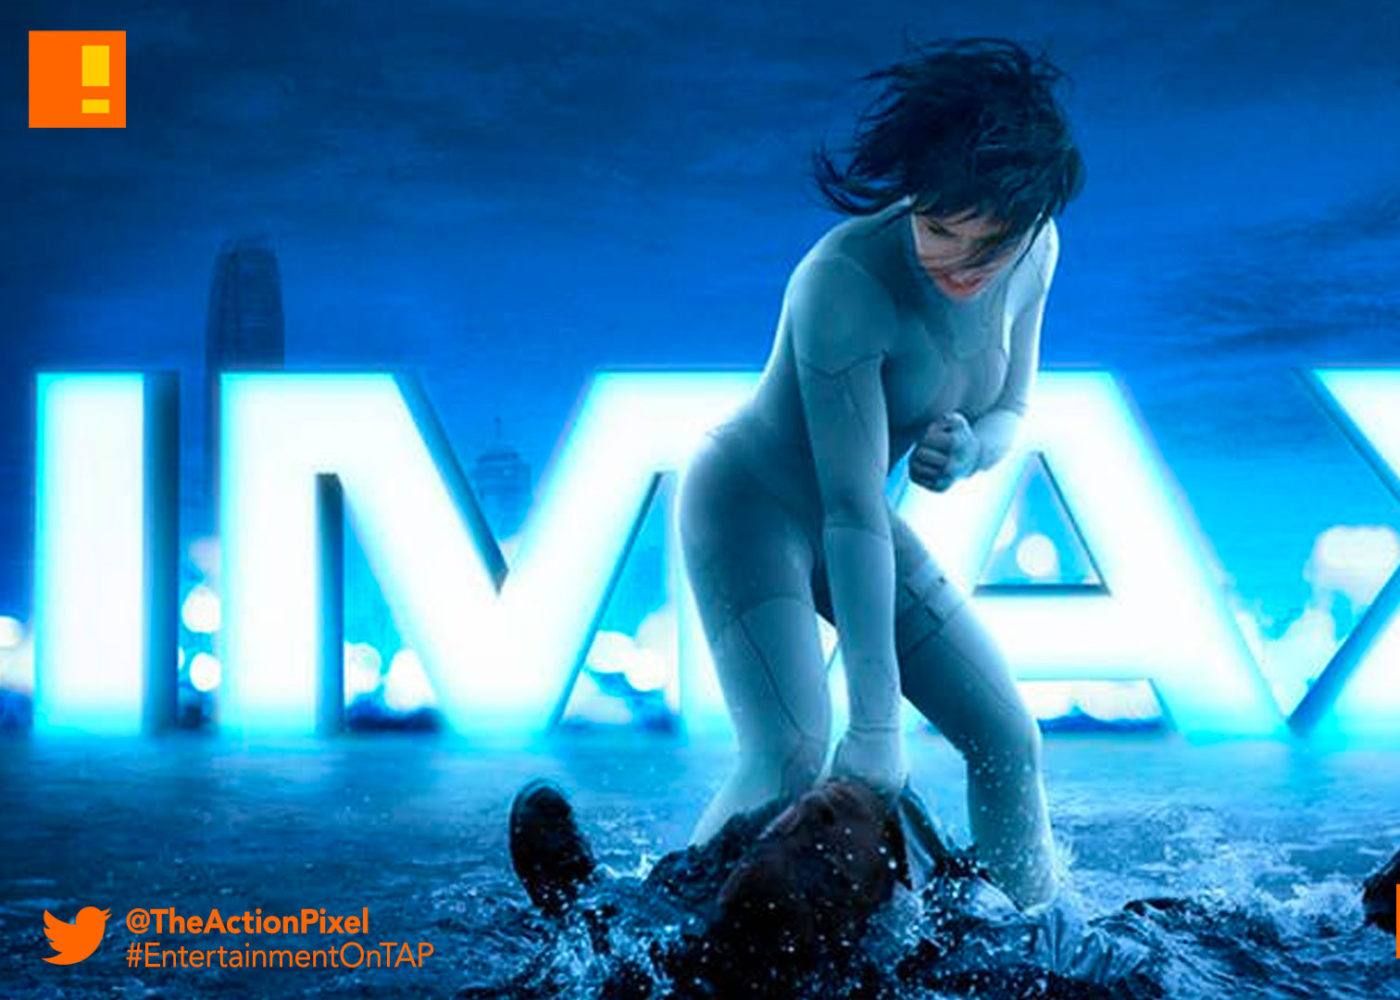 gits,trailer, major, trailer, ghost in the shell, paramount pictures, the action pixel, entertainment on tap,poster, imax